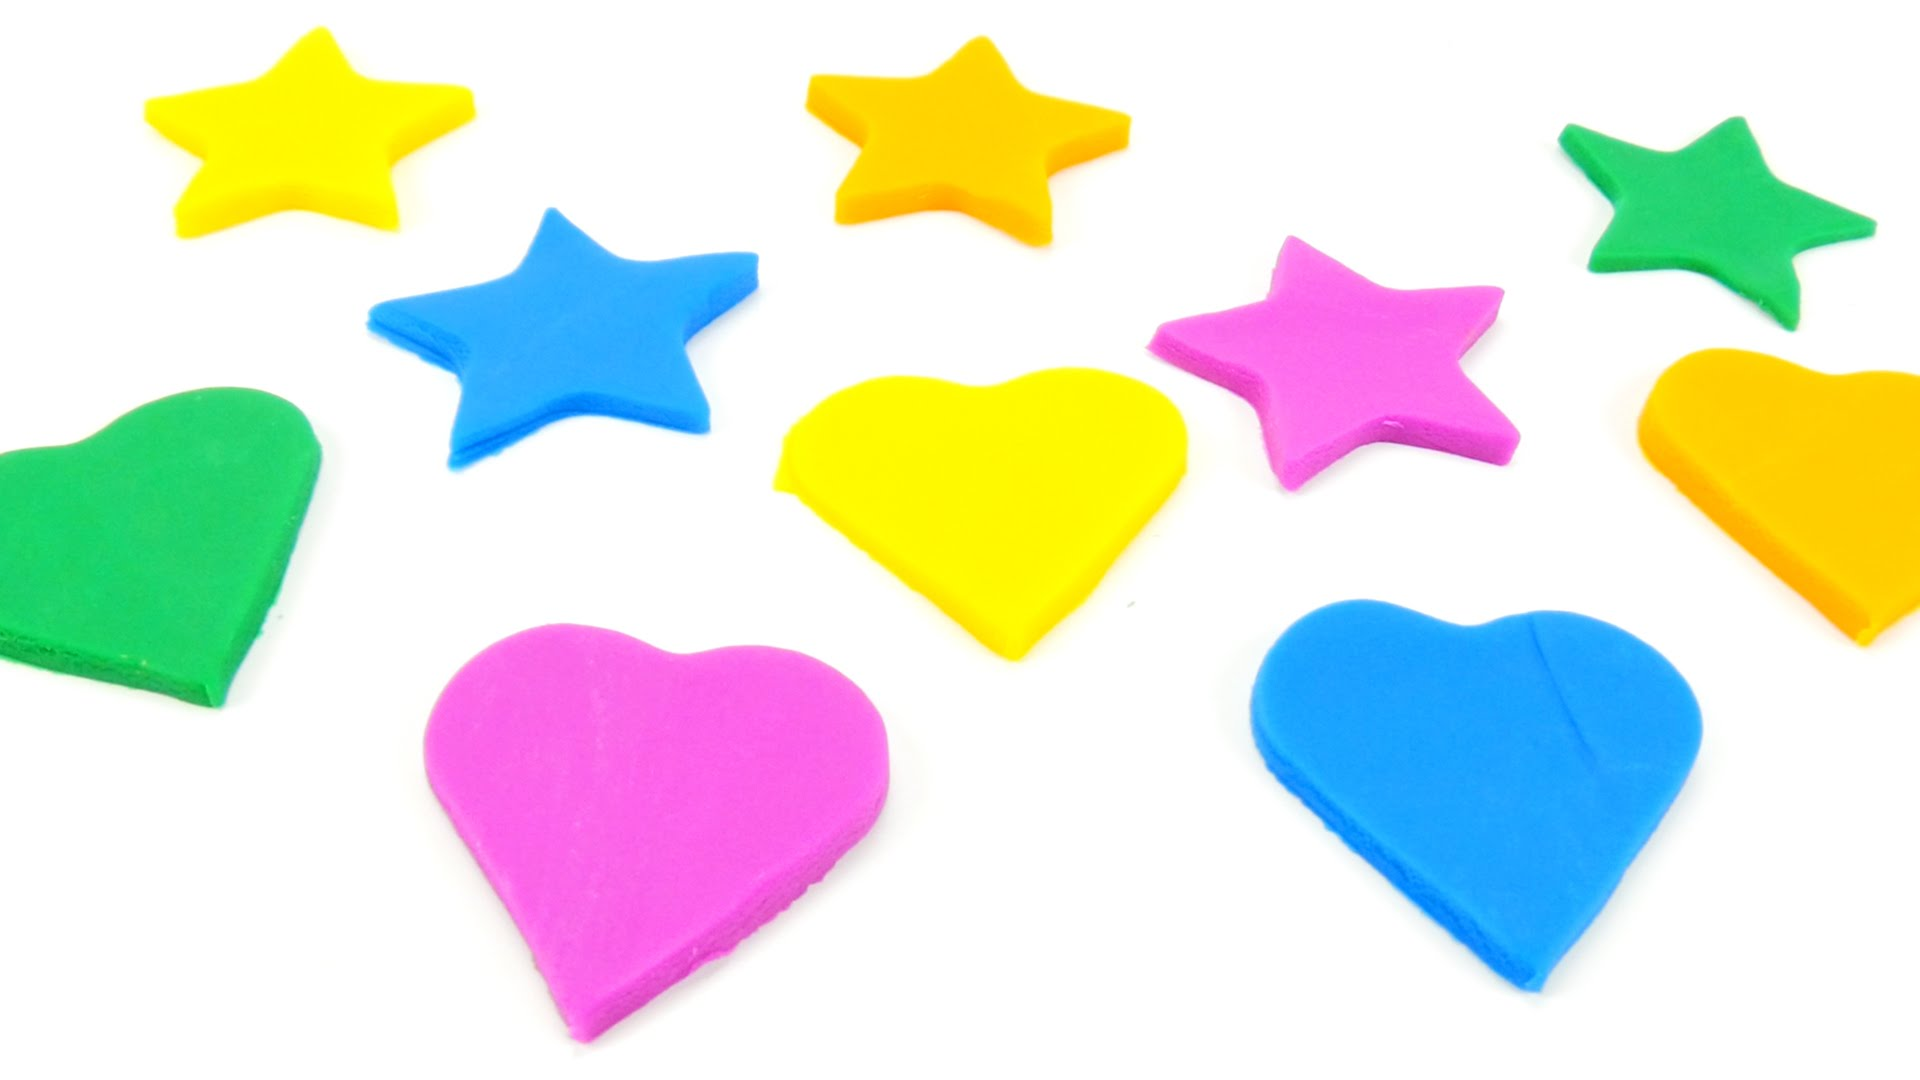 1920x1080 How To Make Play Doh Hearts Amp Stars W Plasticine! New Modeling